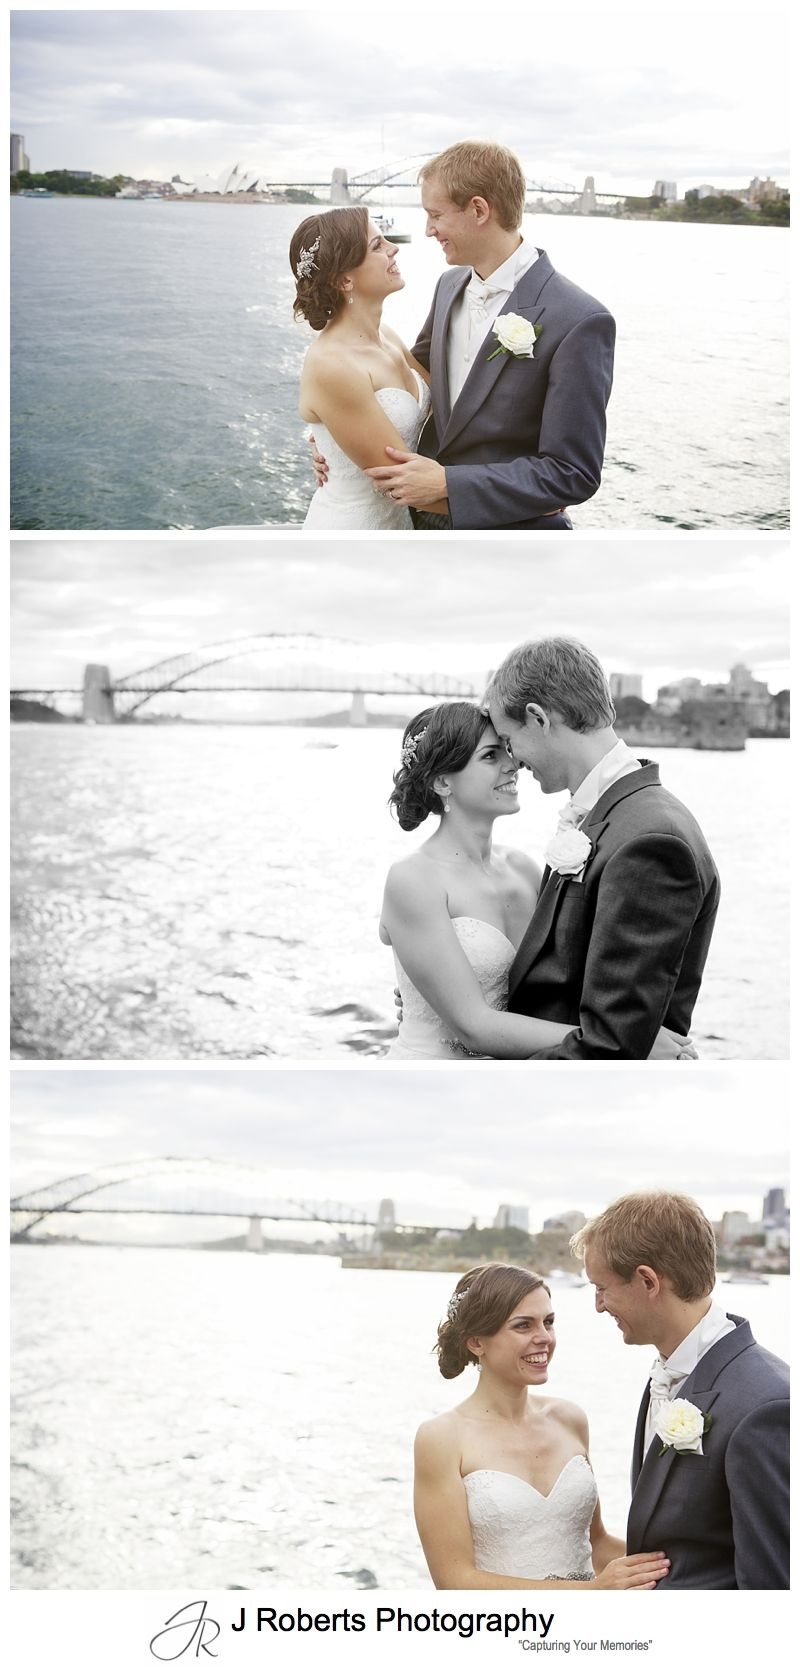 Bridal portraits on a harbour cruise sydney - sydney wedding photography